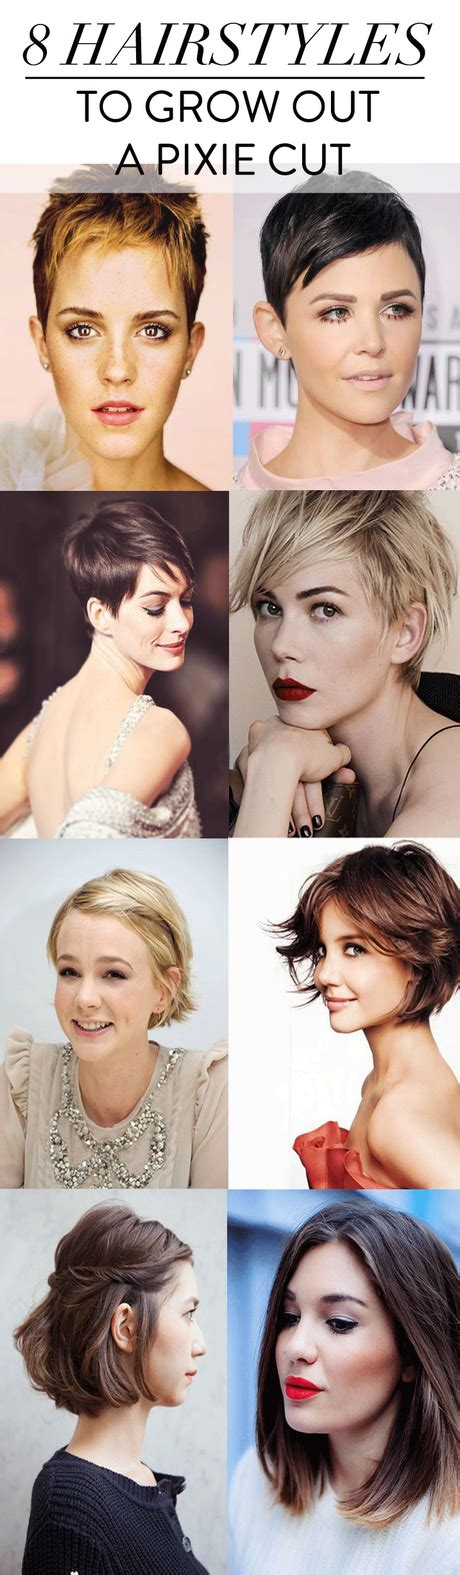 growing out a pixie cut step by step growing out a pixie cut stages